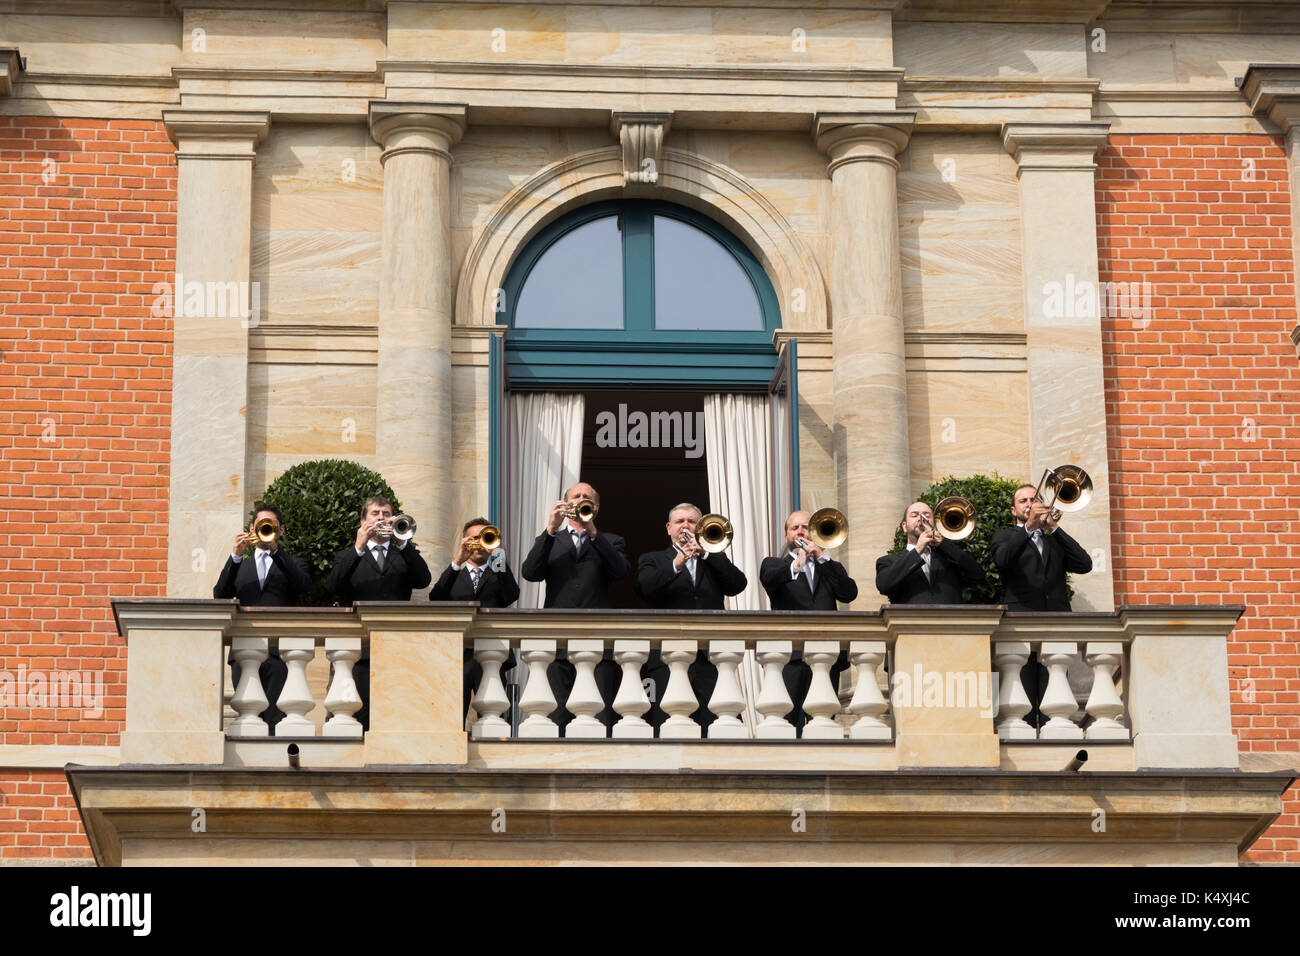 pre-performance fanfare, The Bayreuth Festspielhaus or Bayreuth Festival Theatre opera house, Franconia, Bavaria, Germany - Stock Image